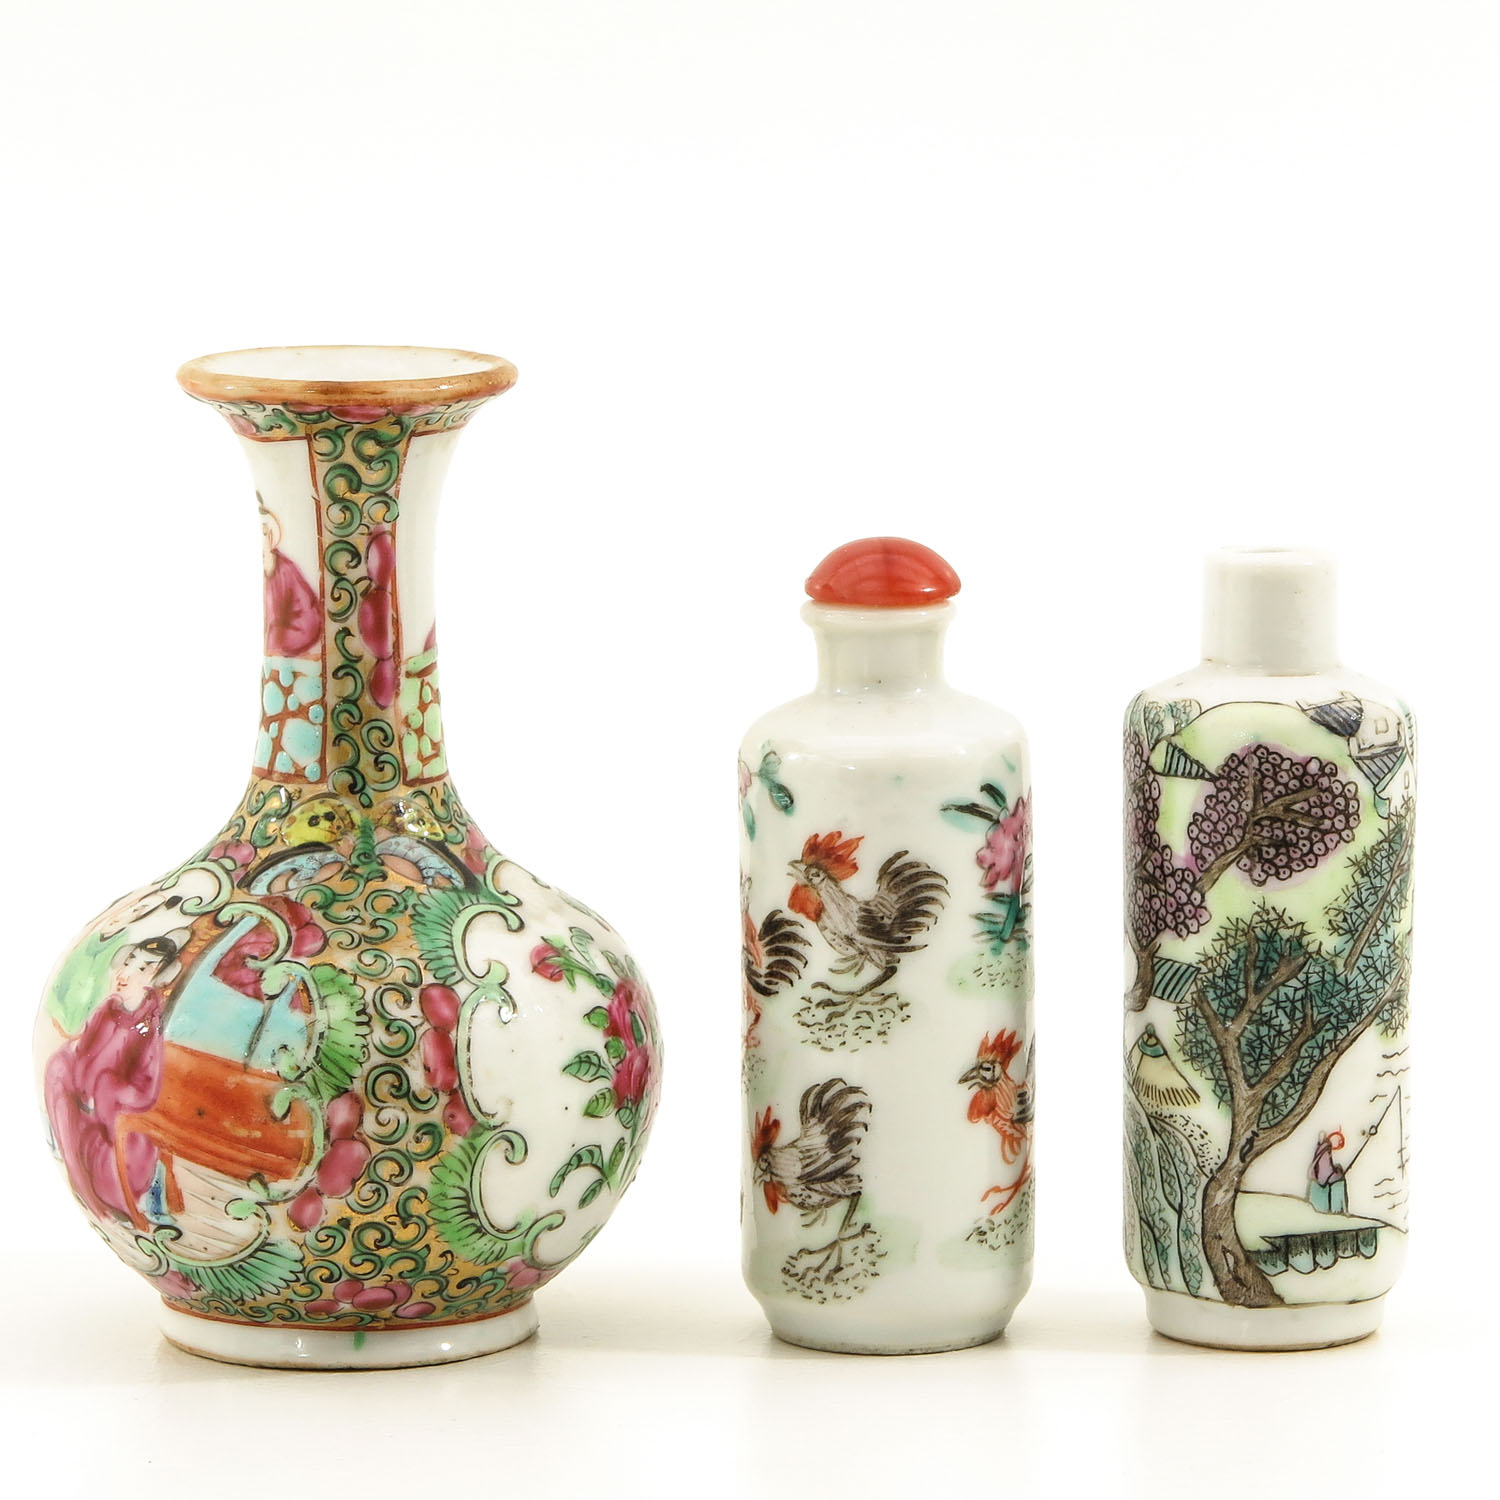 Lot 7027 - A Colleciton of Chinese Porcelain